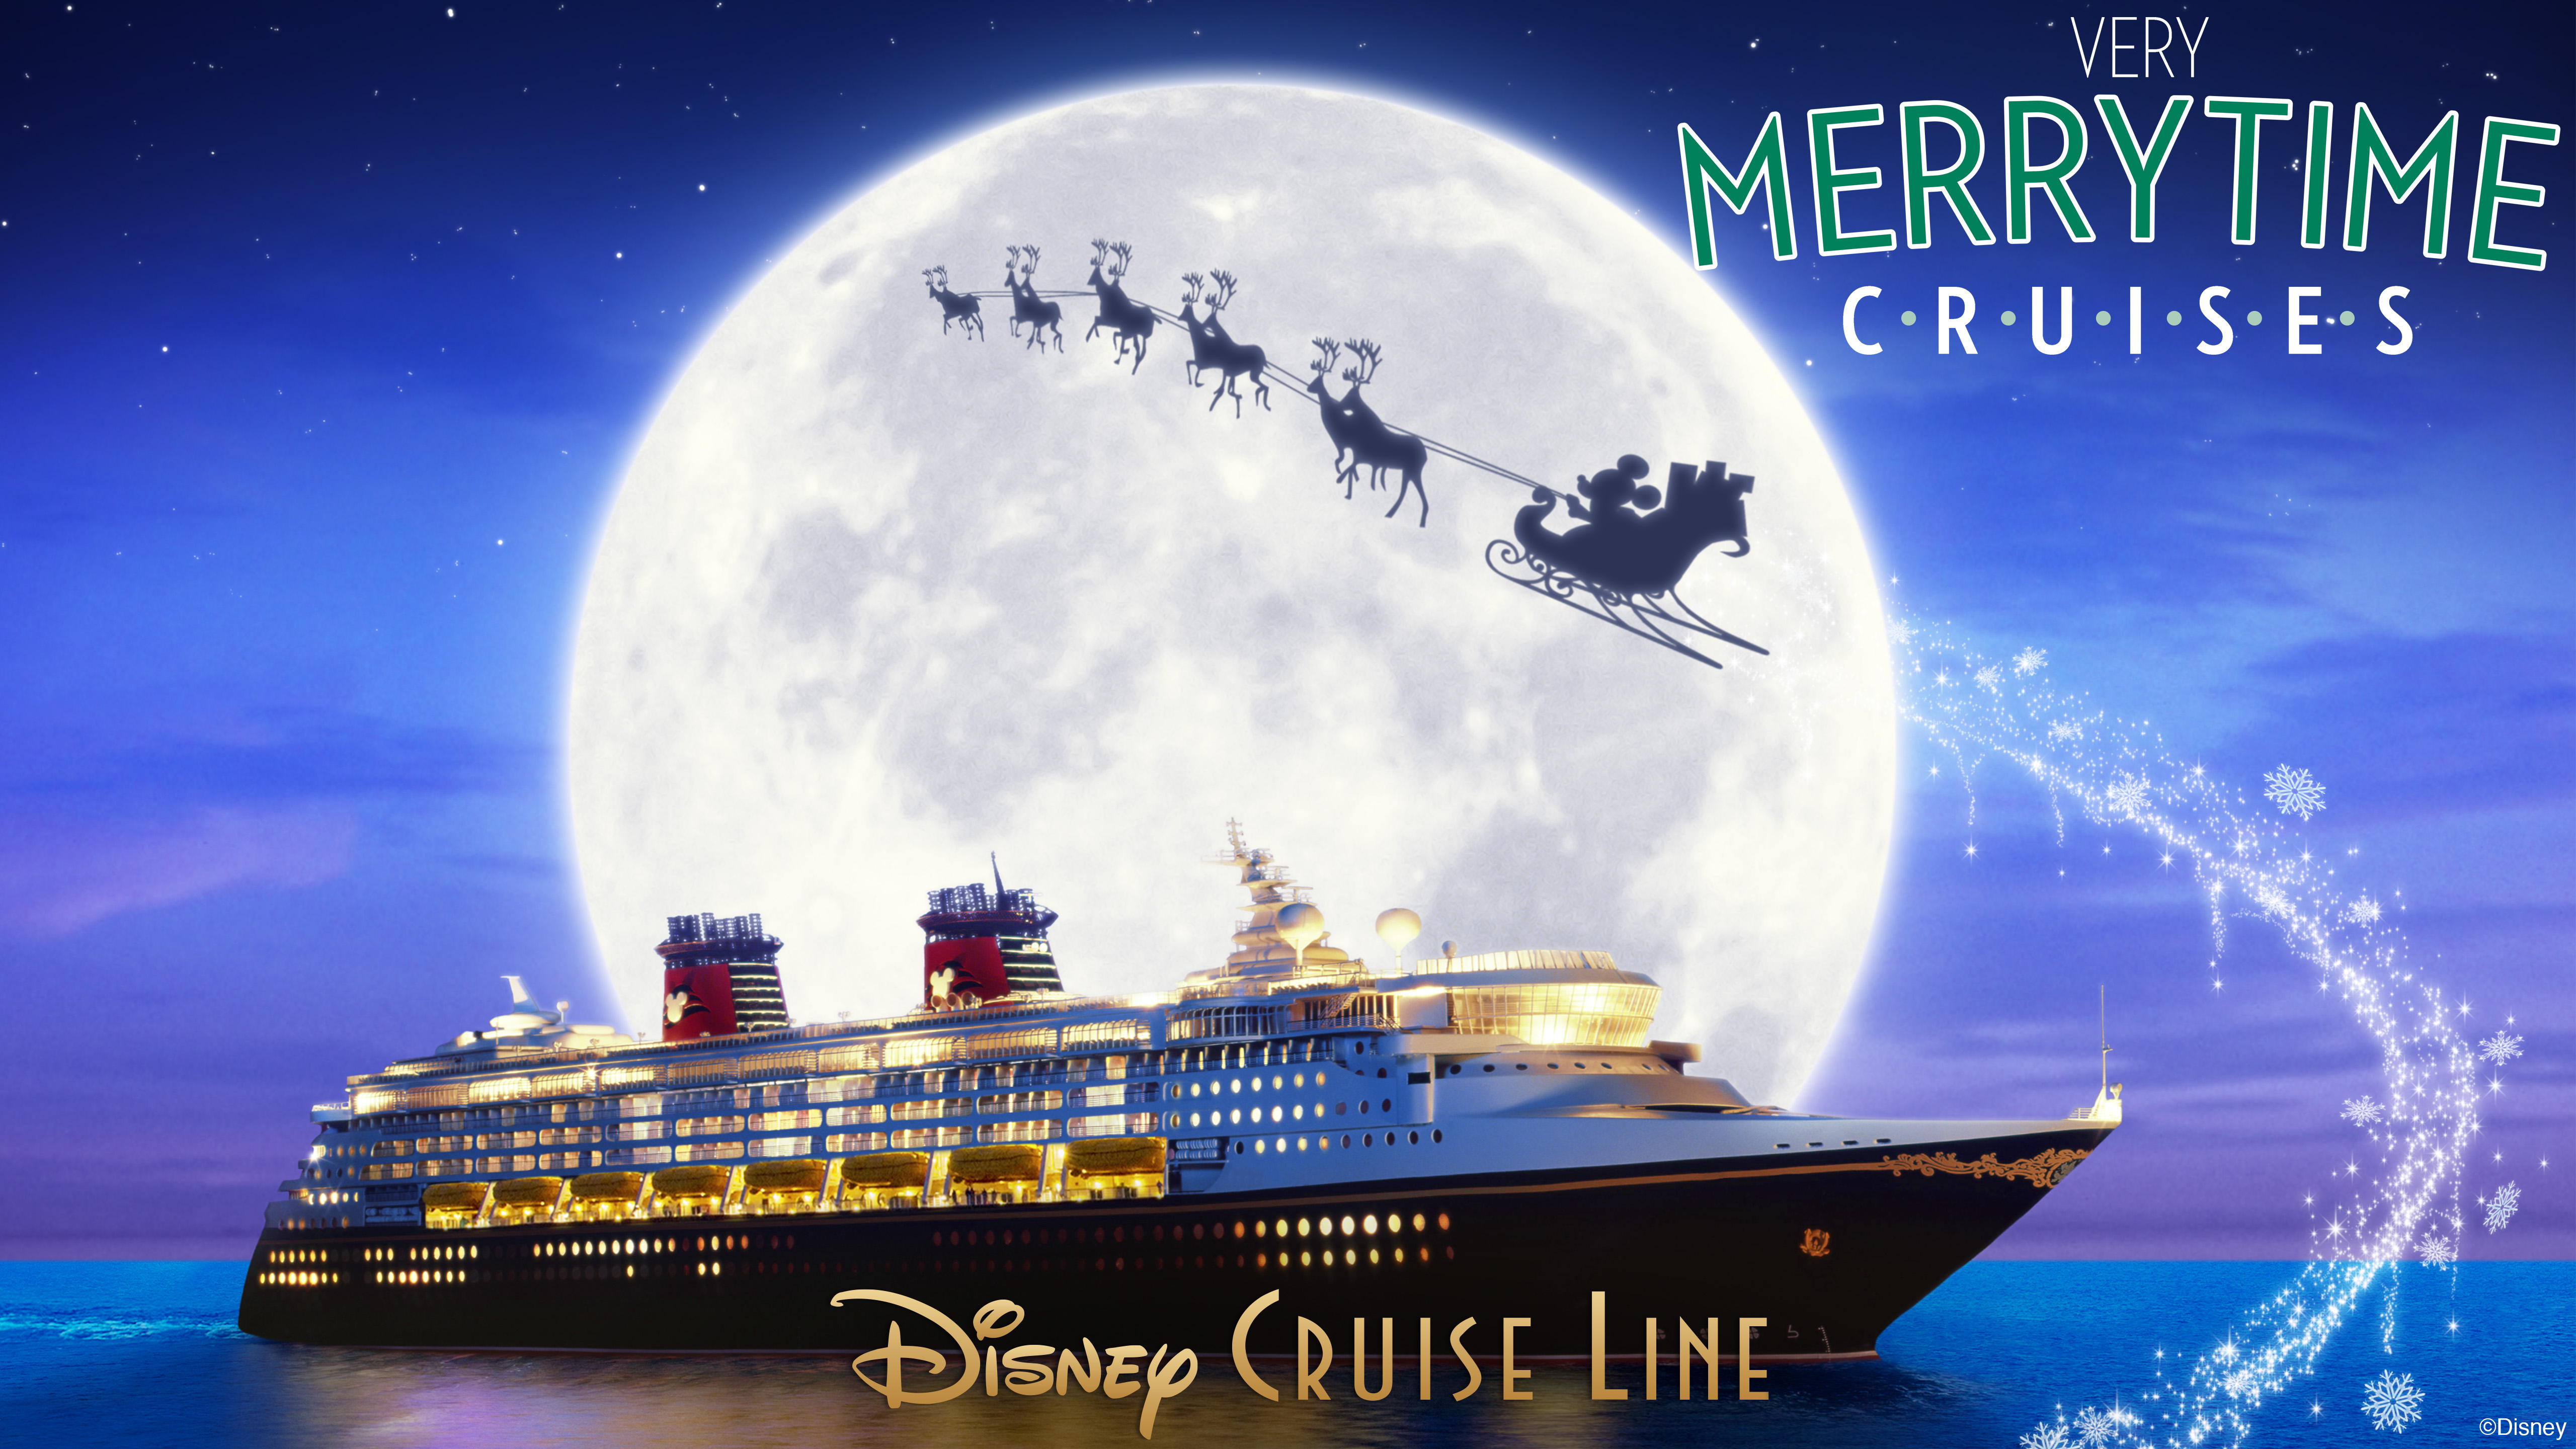 Disney Parks Blog Releases Desktop And Mobile Wallpapers For Very Merrytime Sailings The Disney Cruise Line Blog